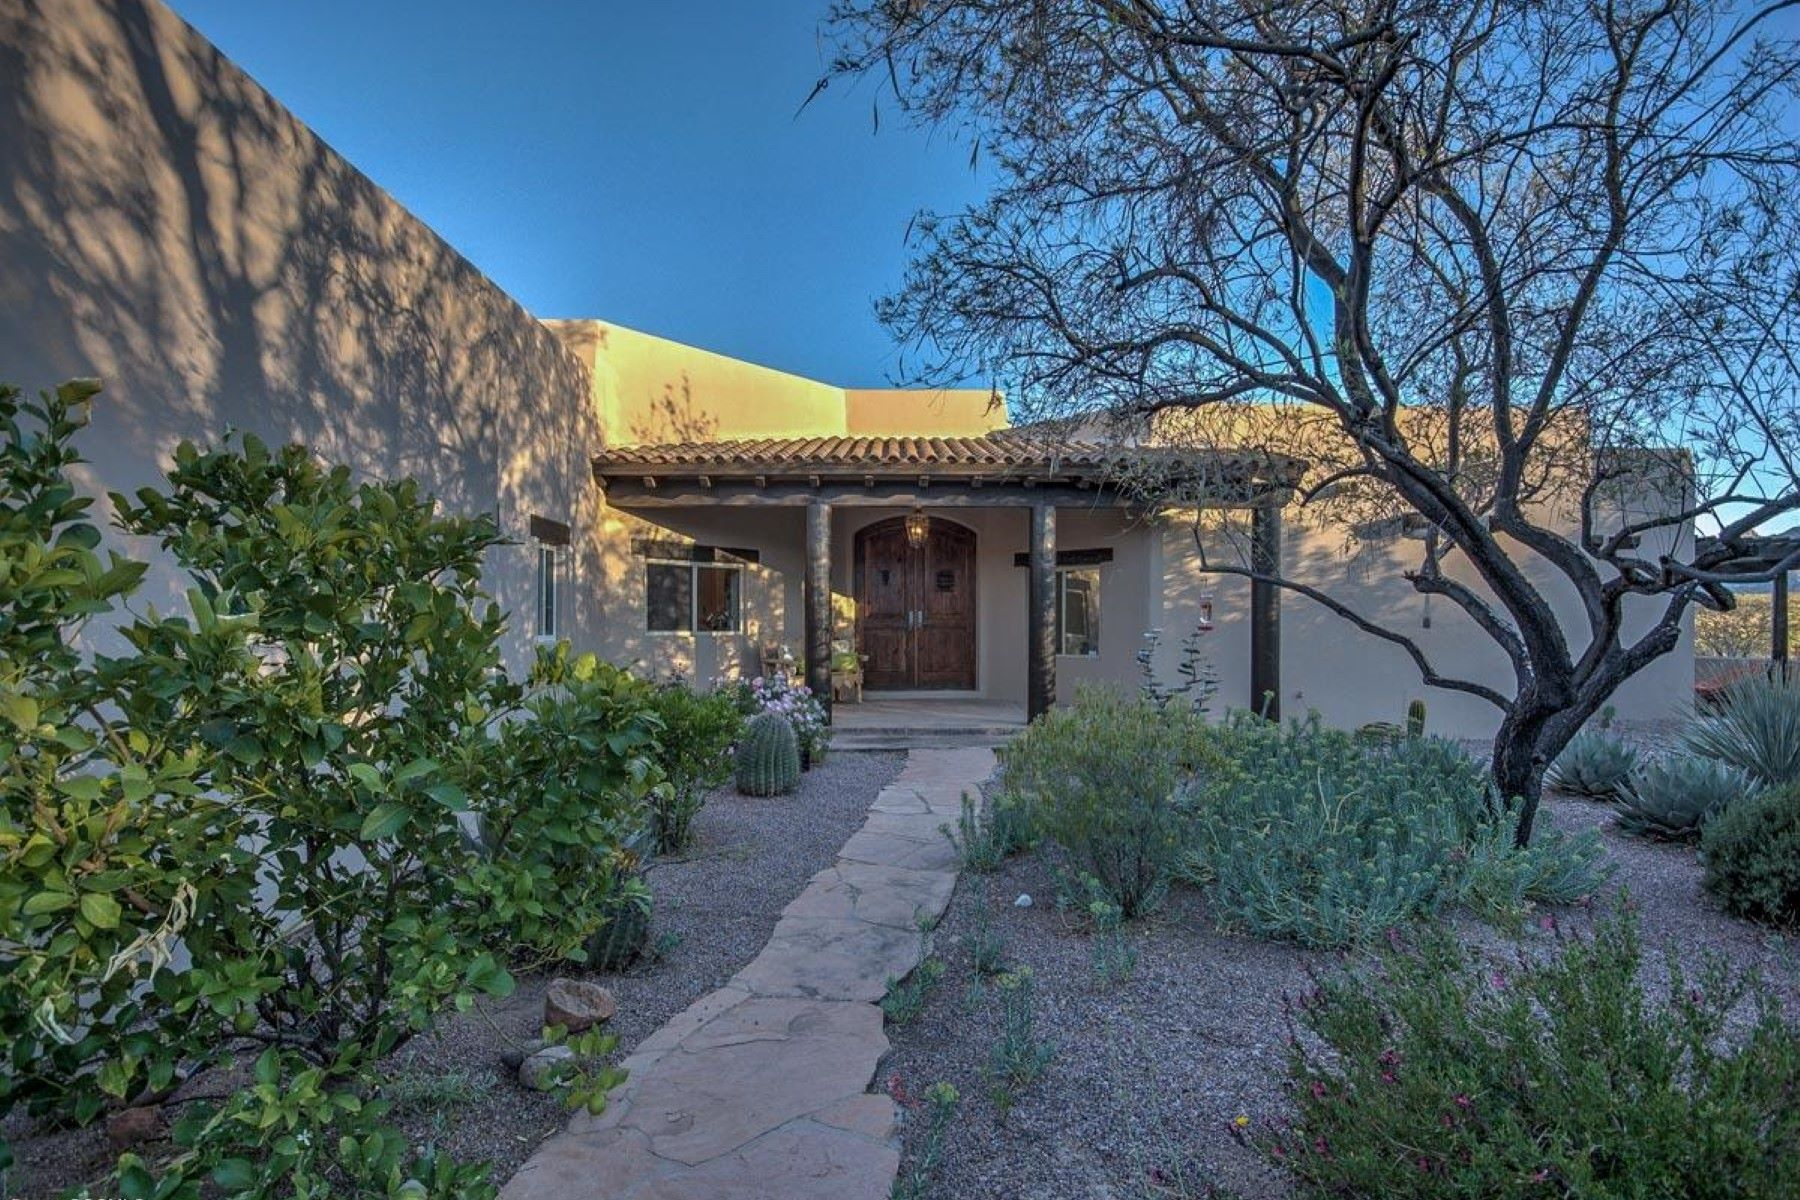 Single Family Home for Sale at 6+ acre property in private Cerro Pelon subdivision 10 Western Saddle Ct Tubac, Arizona, 85646 United States